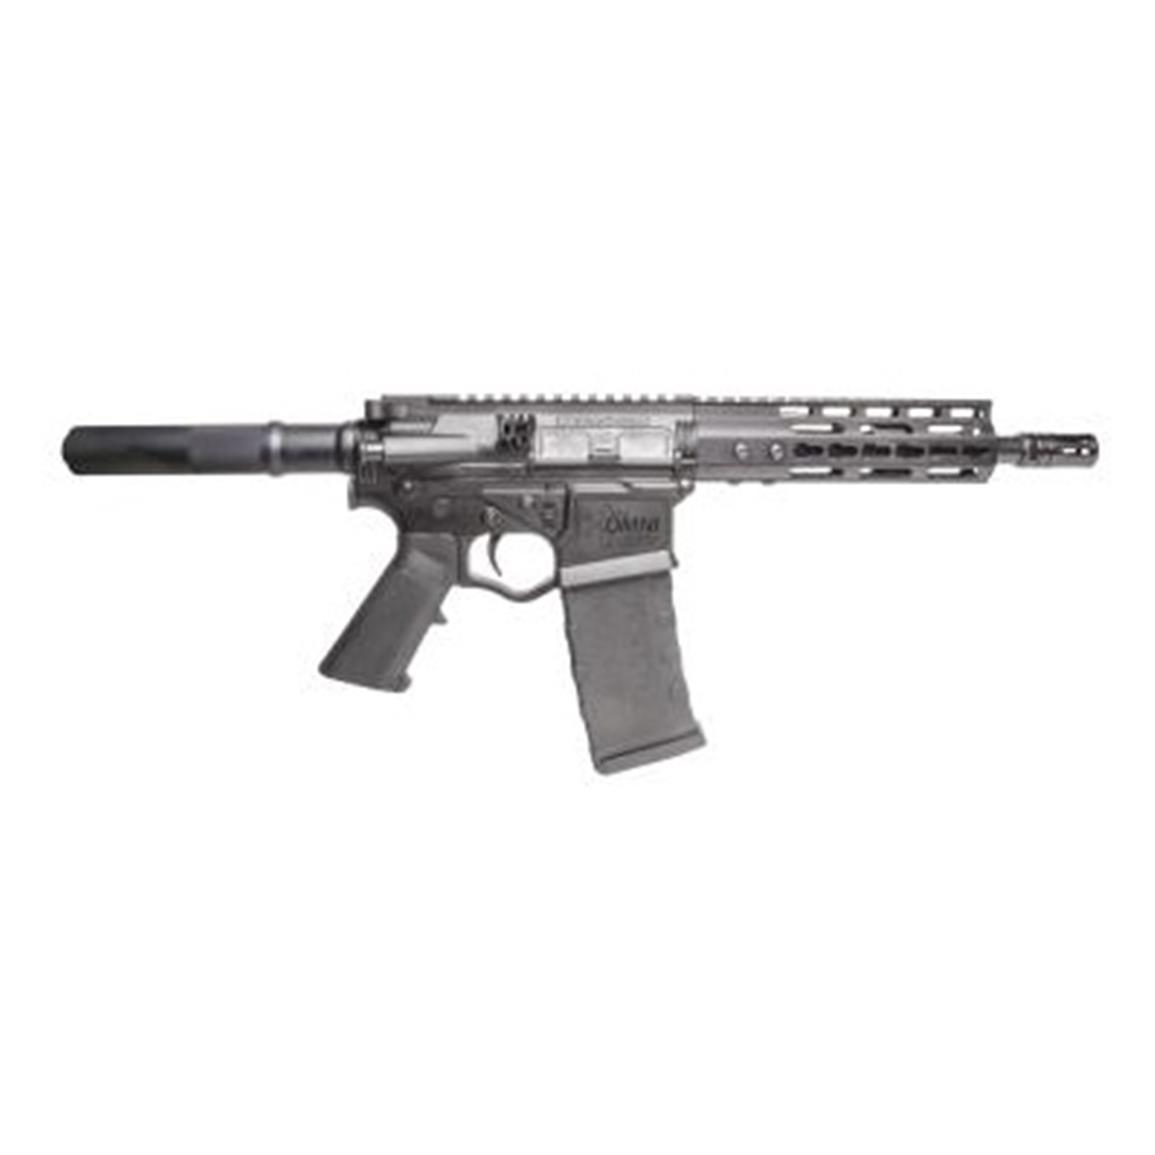 "ATI Omni Hybrid Maxx Pistol, Semi-Automatic, .300 AAC Blackout, 8.5"" Barrel, 30+1 Rounds"